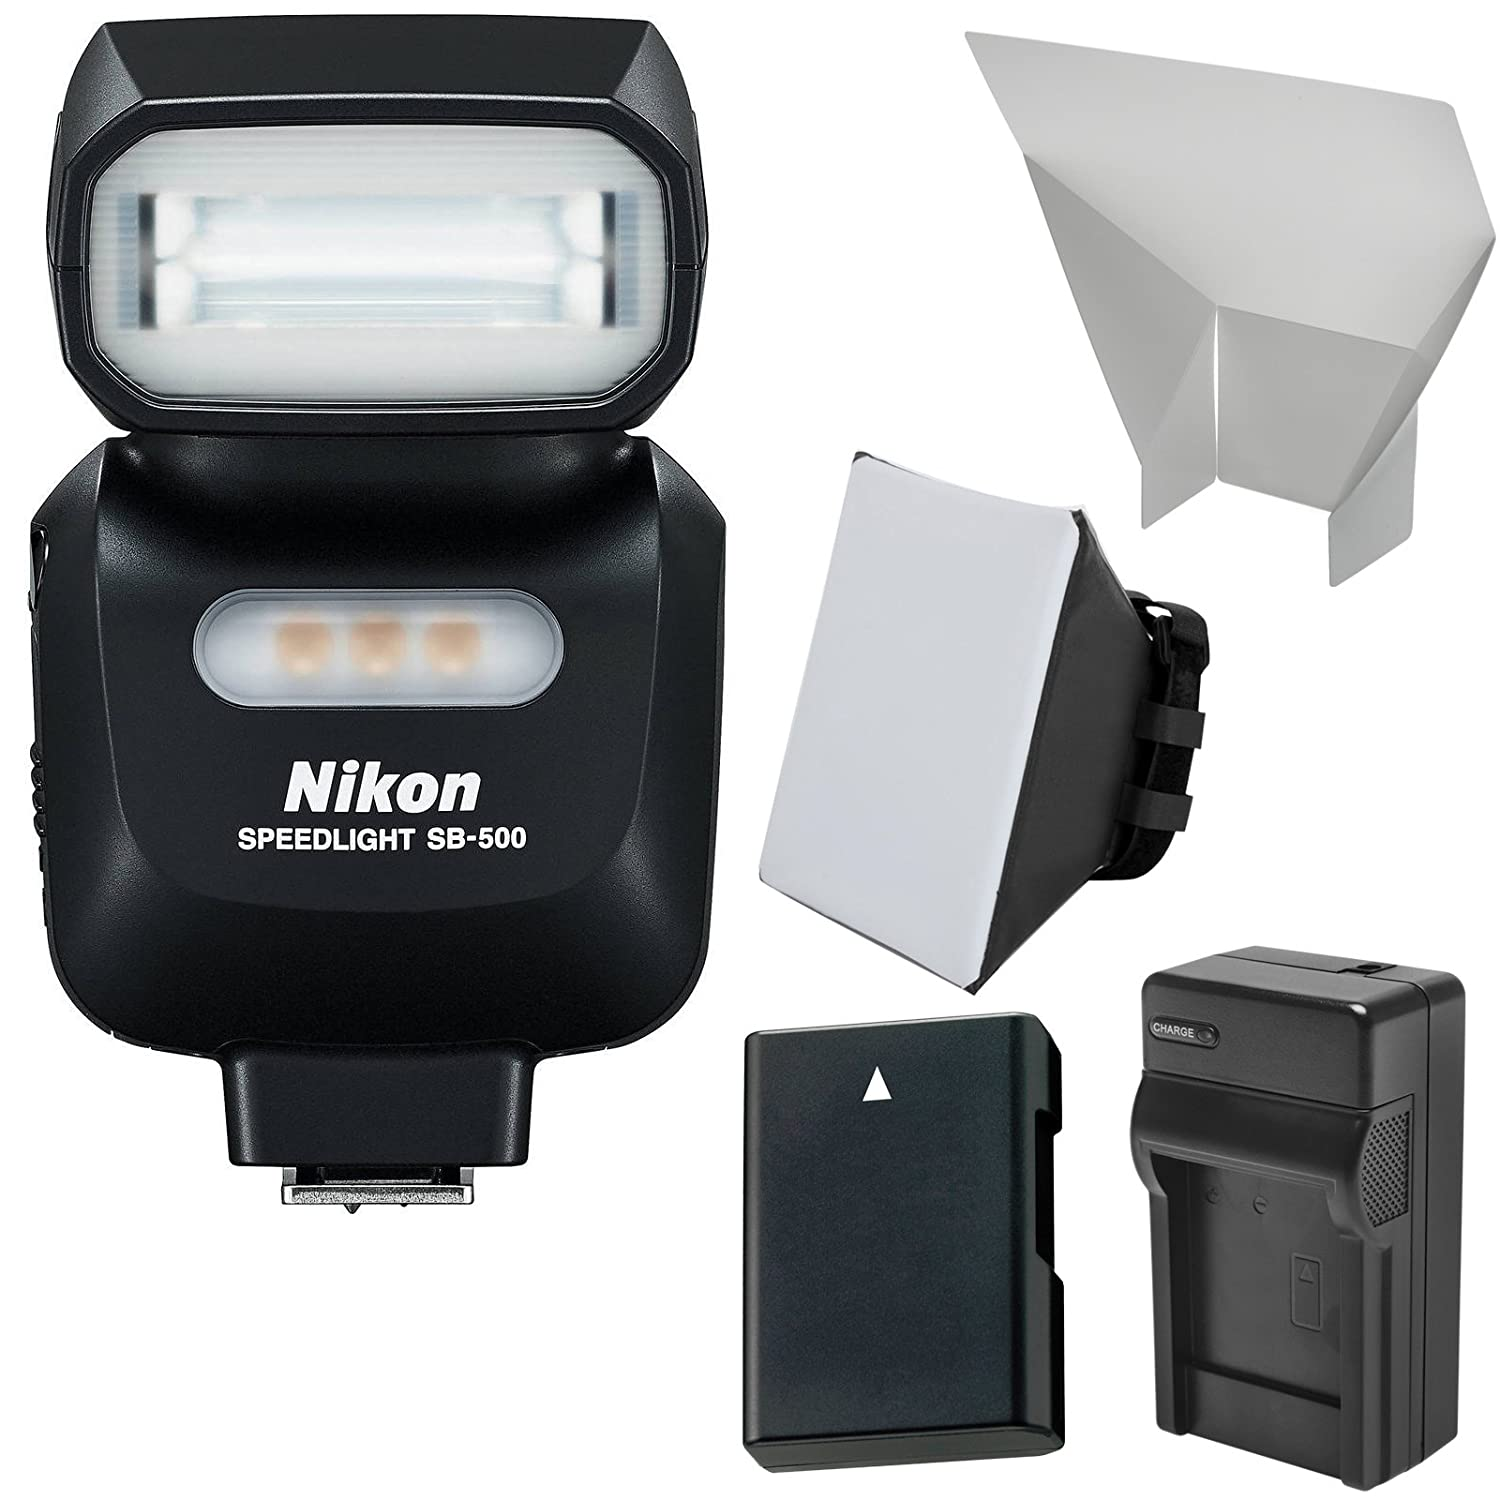 Nikon SB-500 AF Speedlight Flash & LED Video Light + EN-EL14 Battery & Charger + Softbox + Reflector Kit for D3200, D3300, D5100, D5200, D5300 Camera вспышка для фотоаппарата nikon speedlight sb n7 белая fsa90902